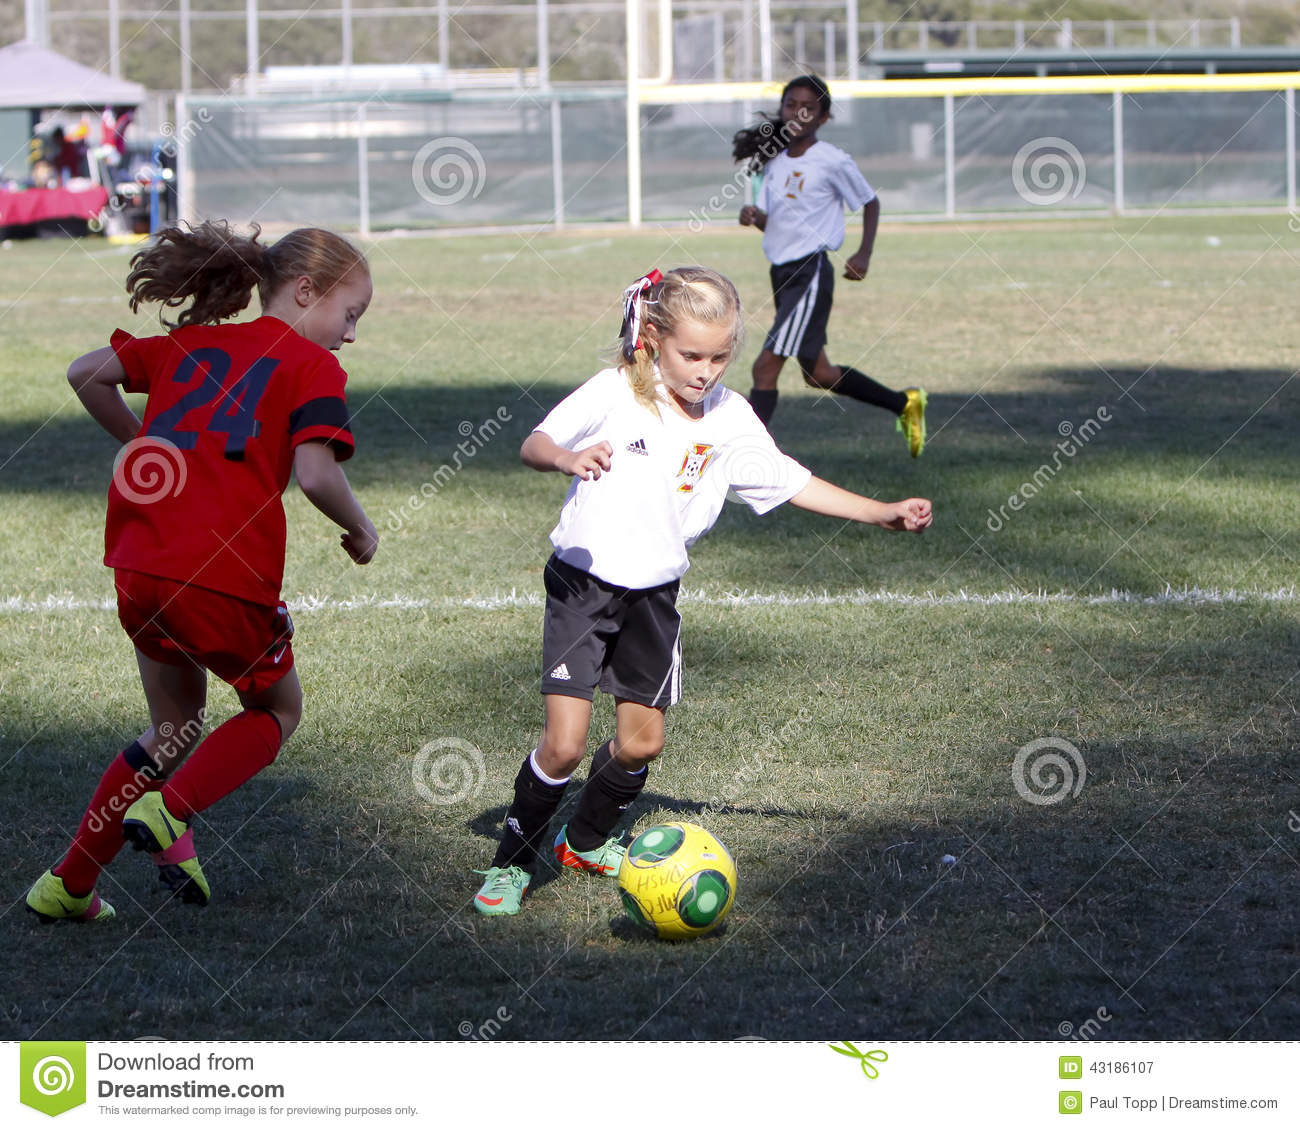 Girls Youth Soccer Football Players Running For The Ball Editorial Image -3949